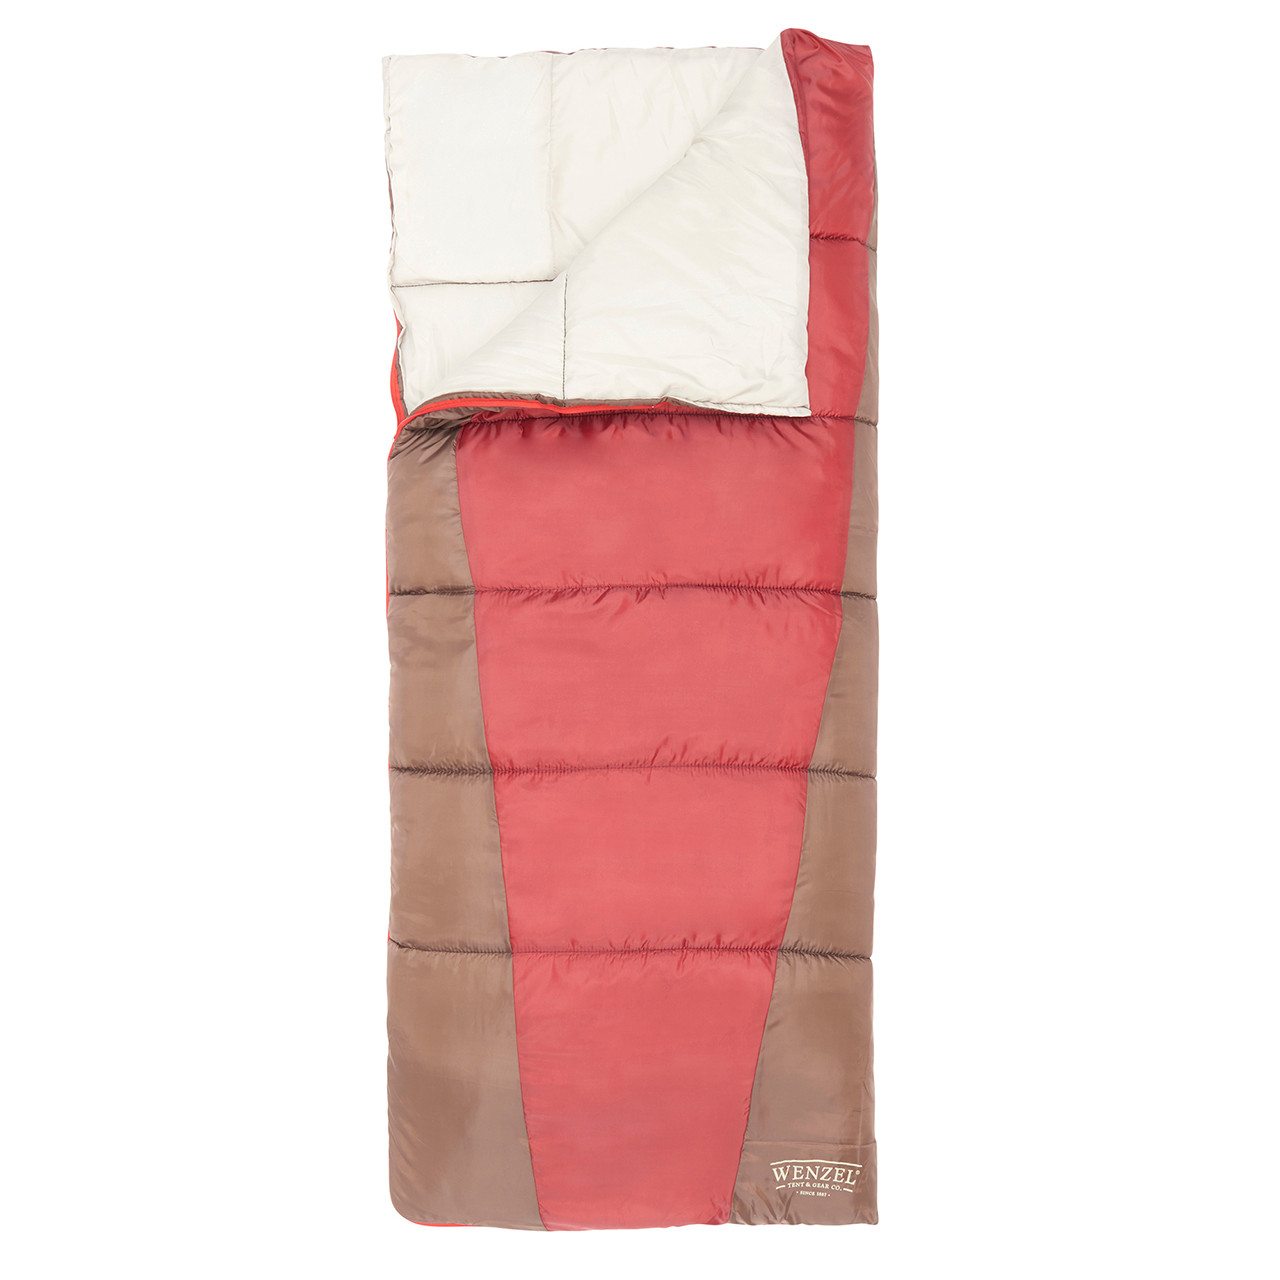 Top down view of the Wenzel Lakeside 40 degree sleeping bag, red and green, laying flat with the zipper partially undone and the corner folded over showing the tan interior of the sleeping bag